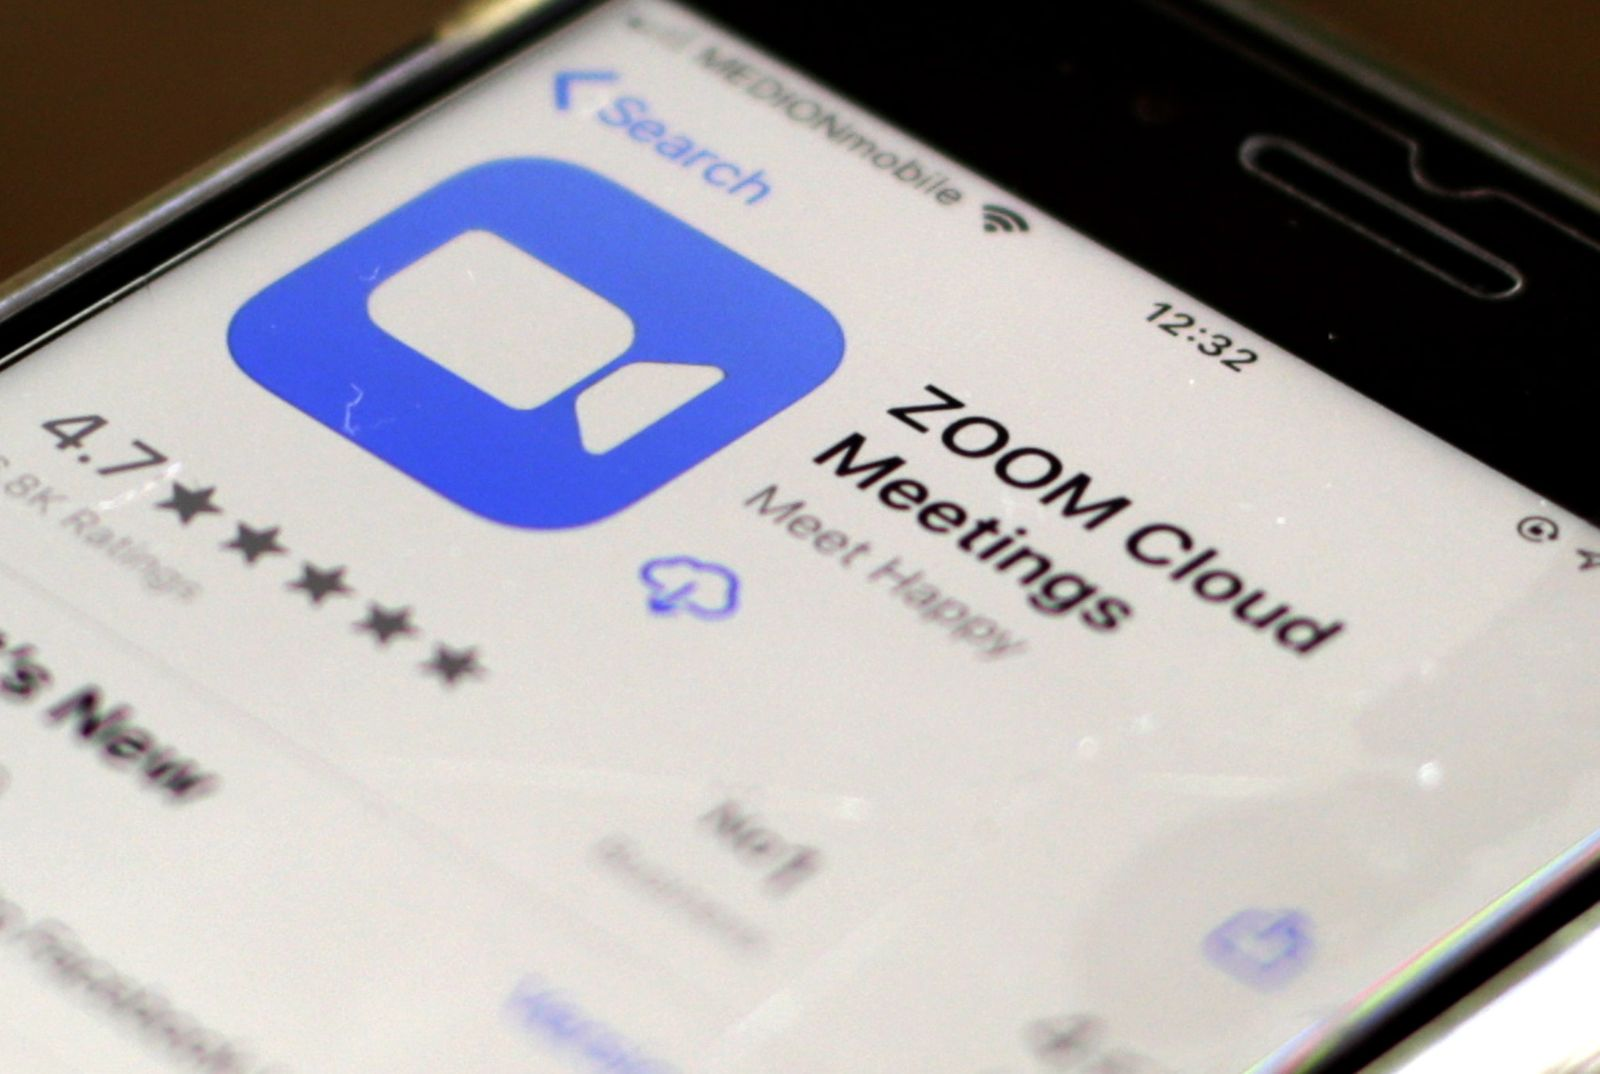 Zoom videoconferencing app sees a rise in users during ongoing novel coronavirus disease COVID-19 pandemic, Oestrich Winkel, Germany - 01 Apr 2020